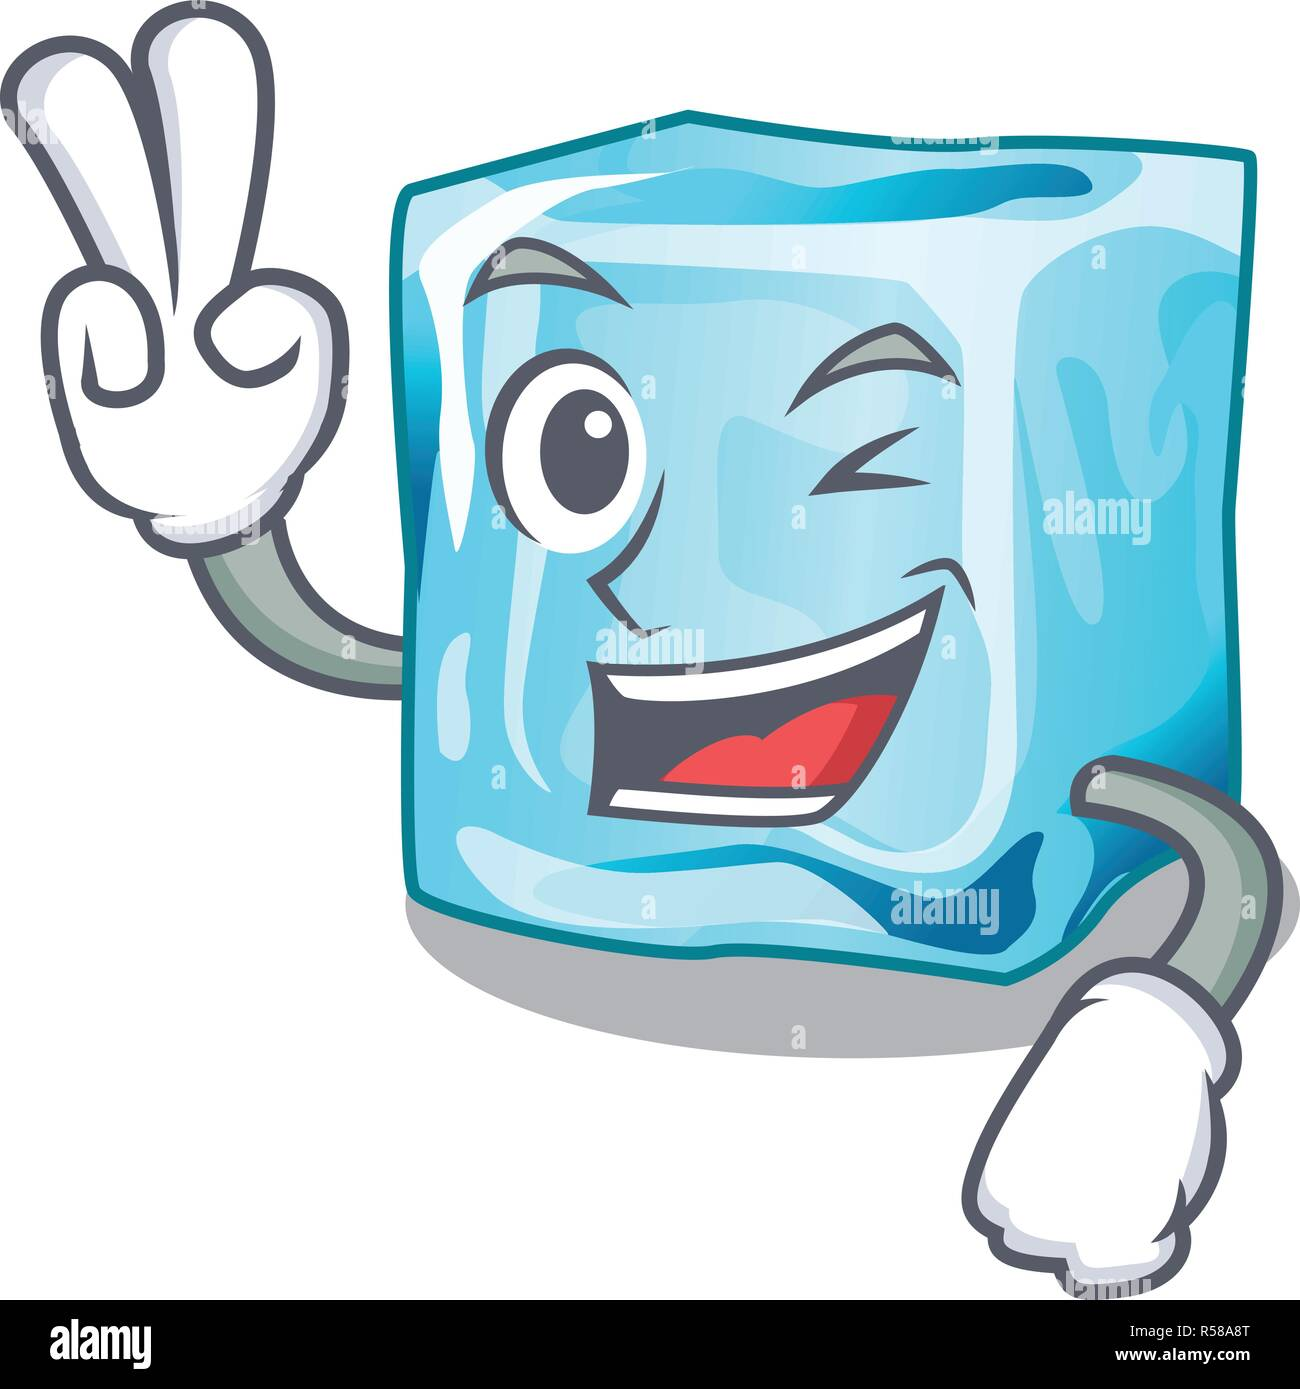 Two finger ice cubes wiht mascot on above - Stock Image